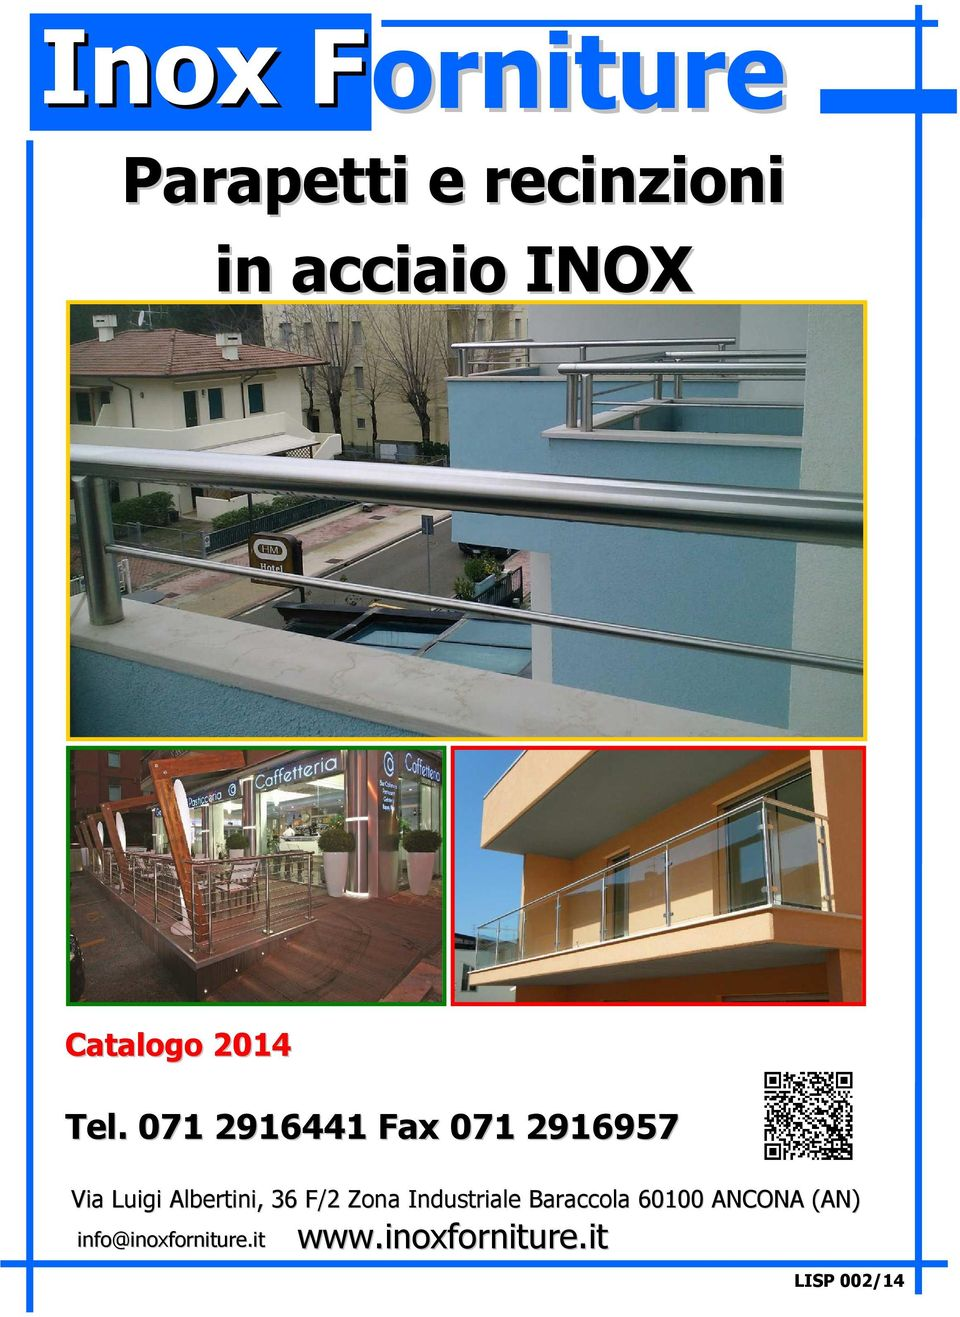 info@inoxforniture.it www.